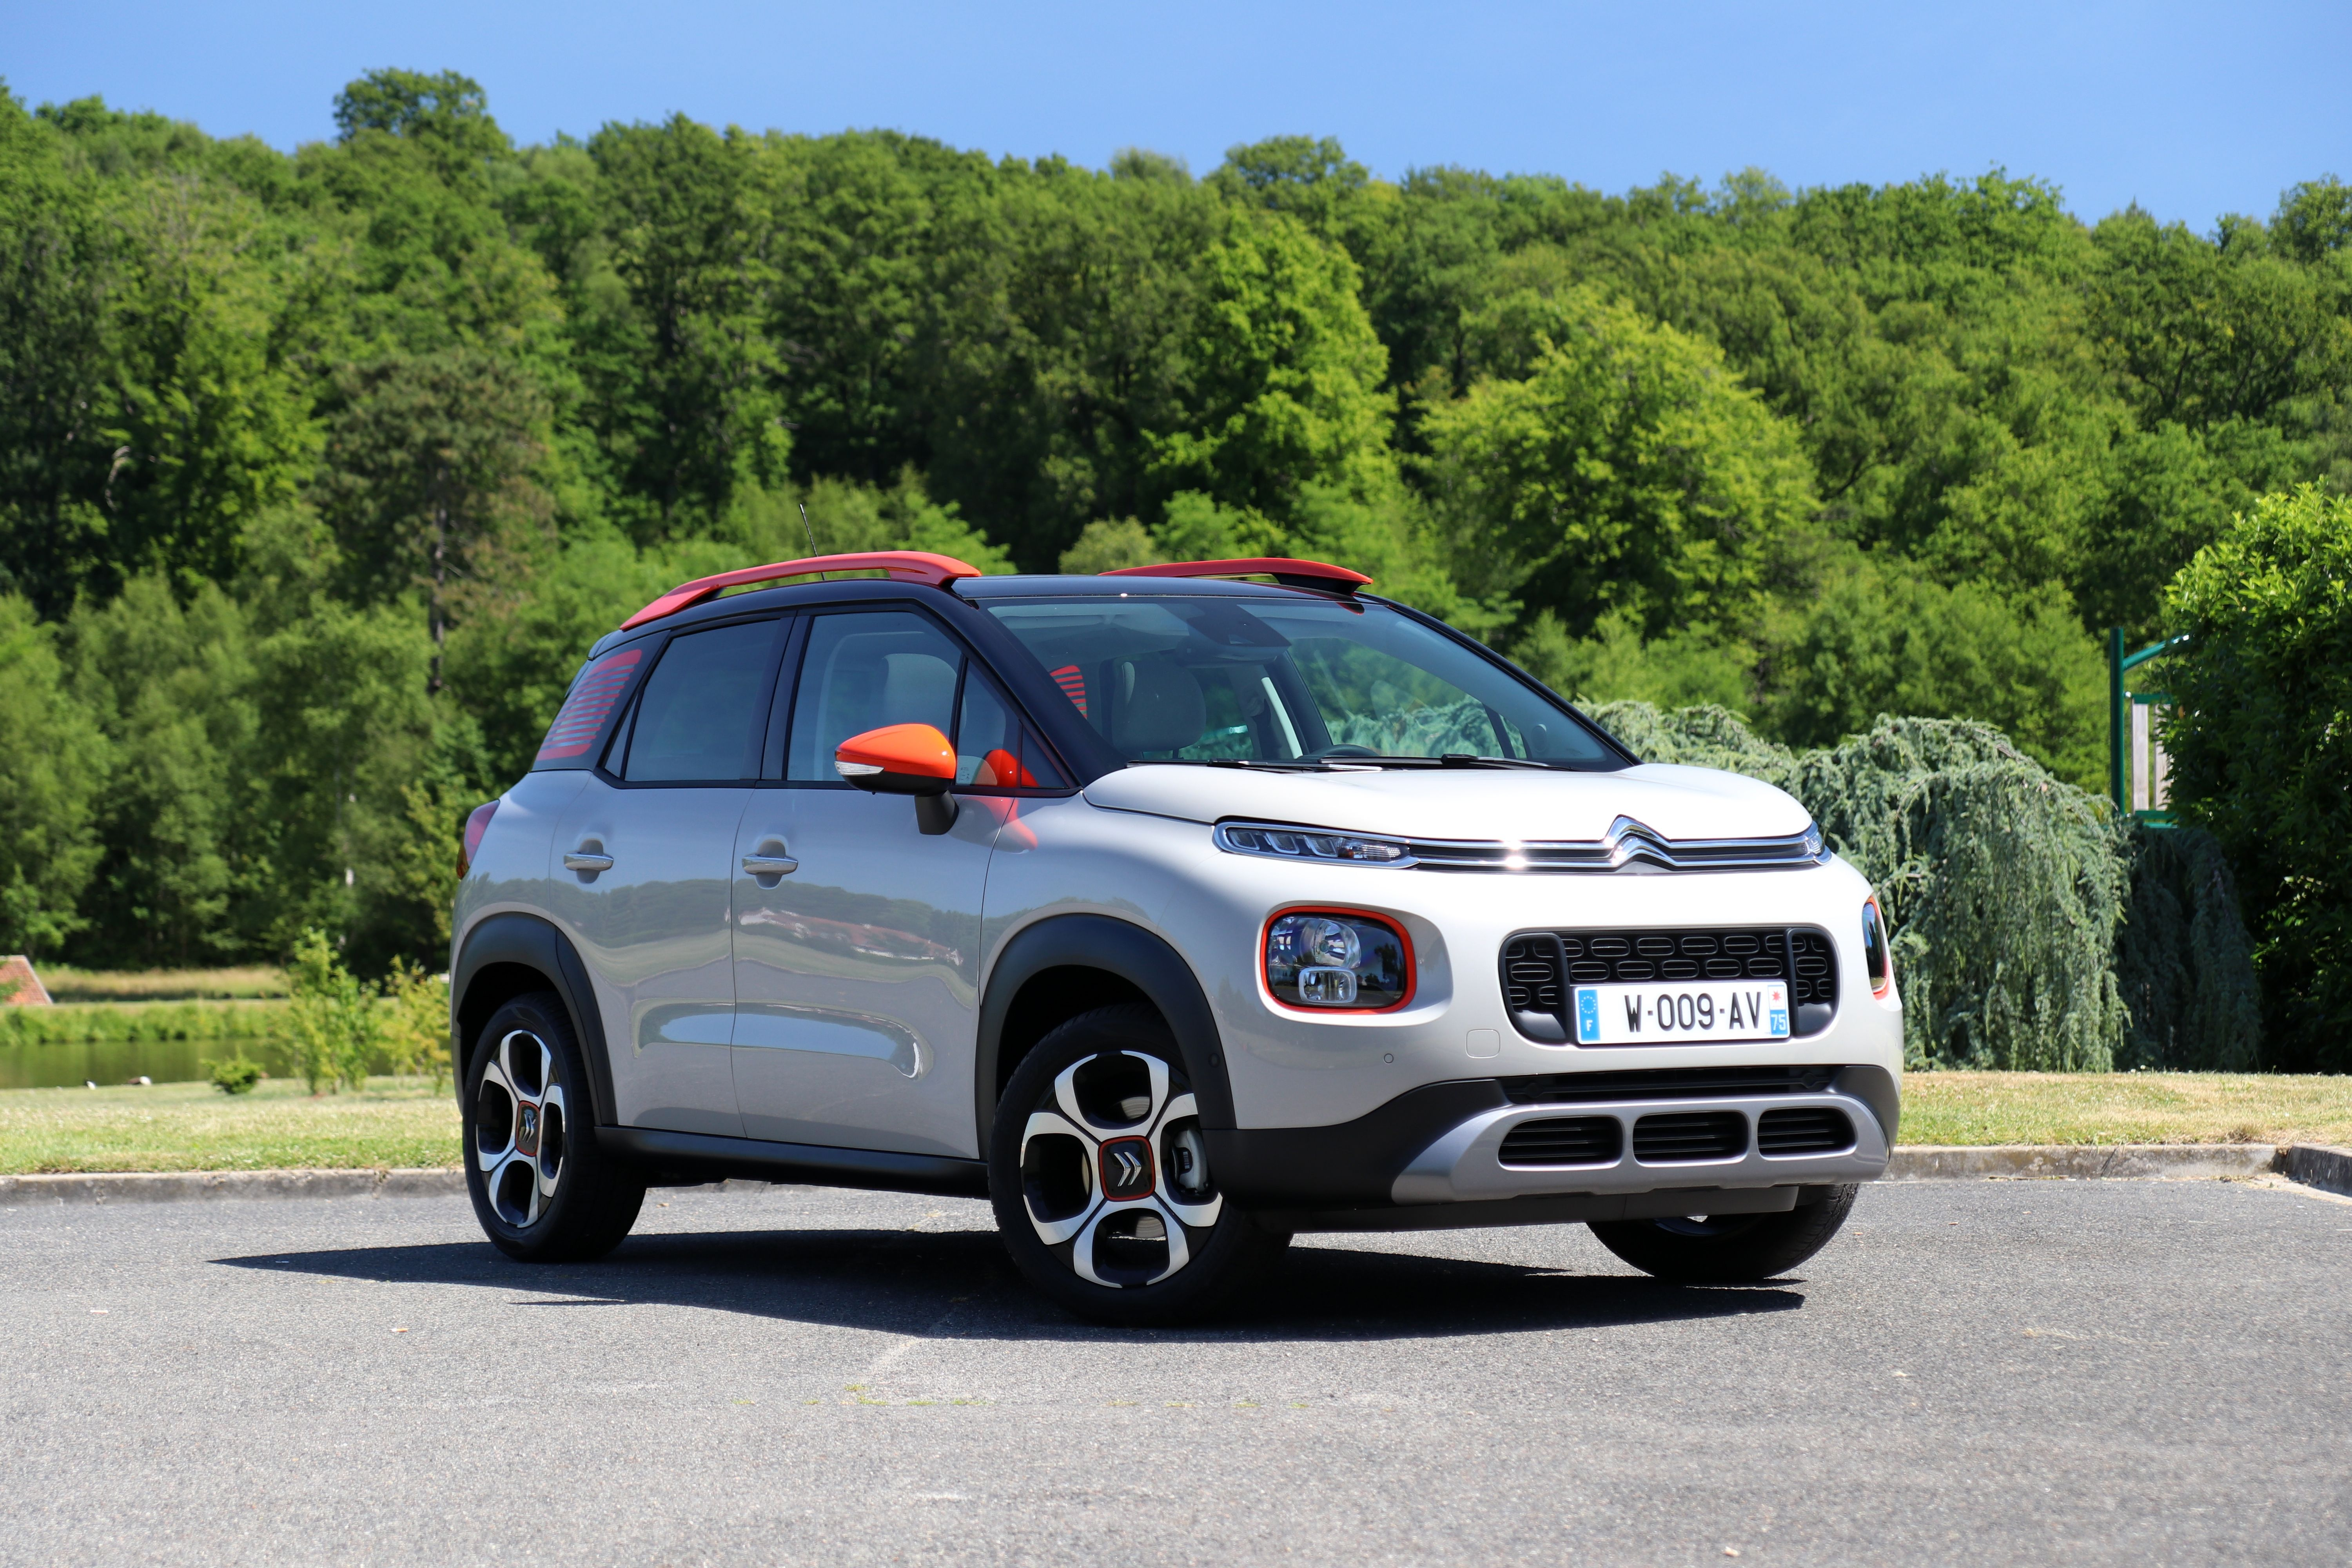 s0 comparatif video statique la nouvelle citroen c3 aircross face aux renault captur et peugeot. Black Bedroom Furniture Sets. Home Design Ideas